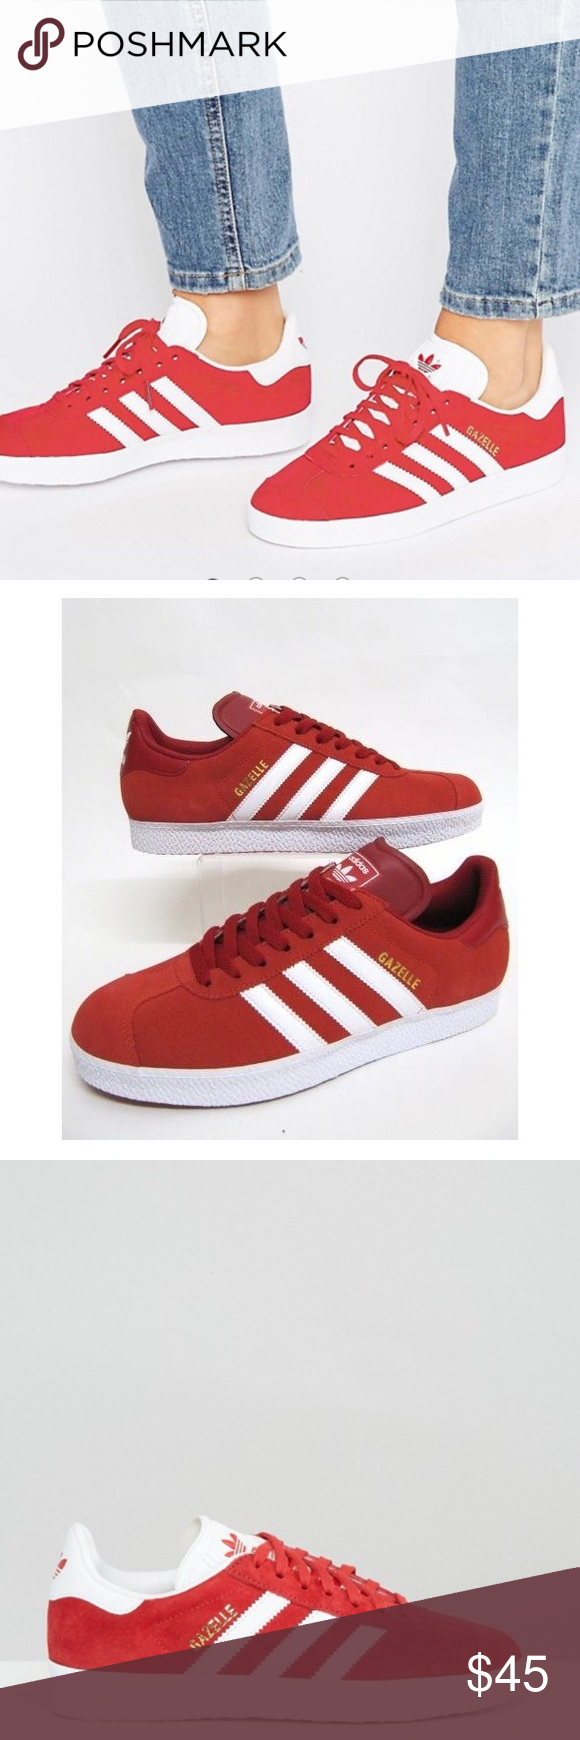 77c2af8e717 Red suede Adidas Gazelle Men s size 6.5 (womens 8) New! Never worn!